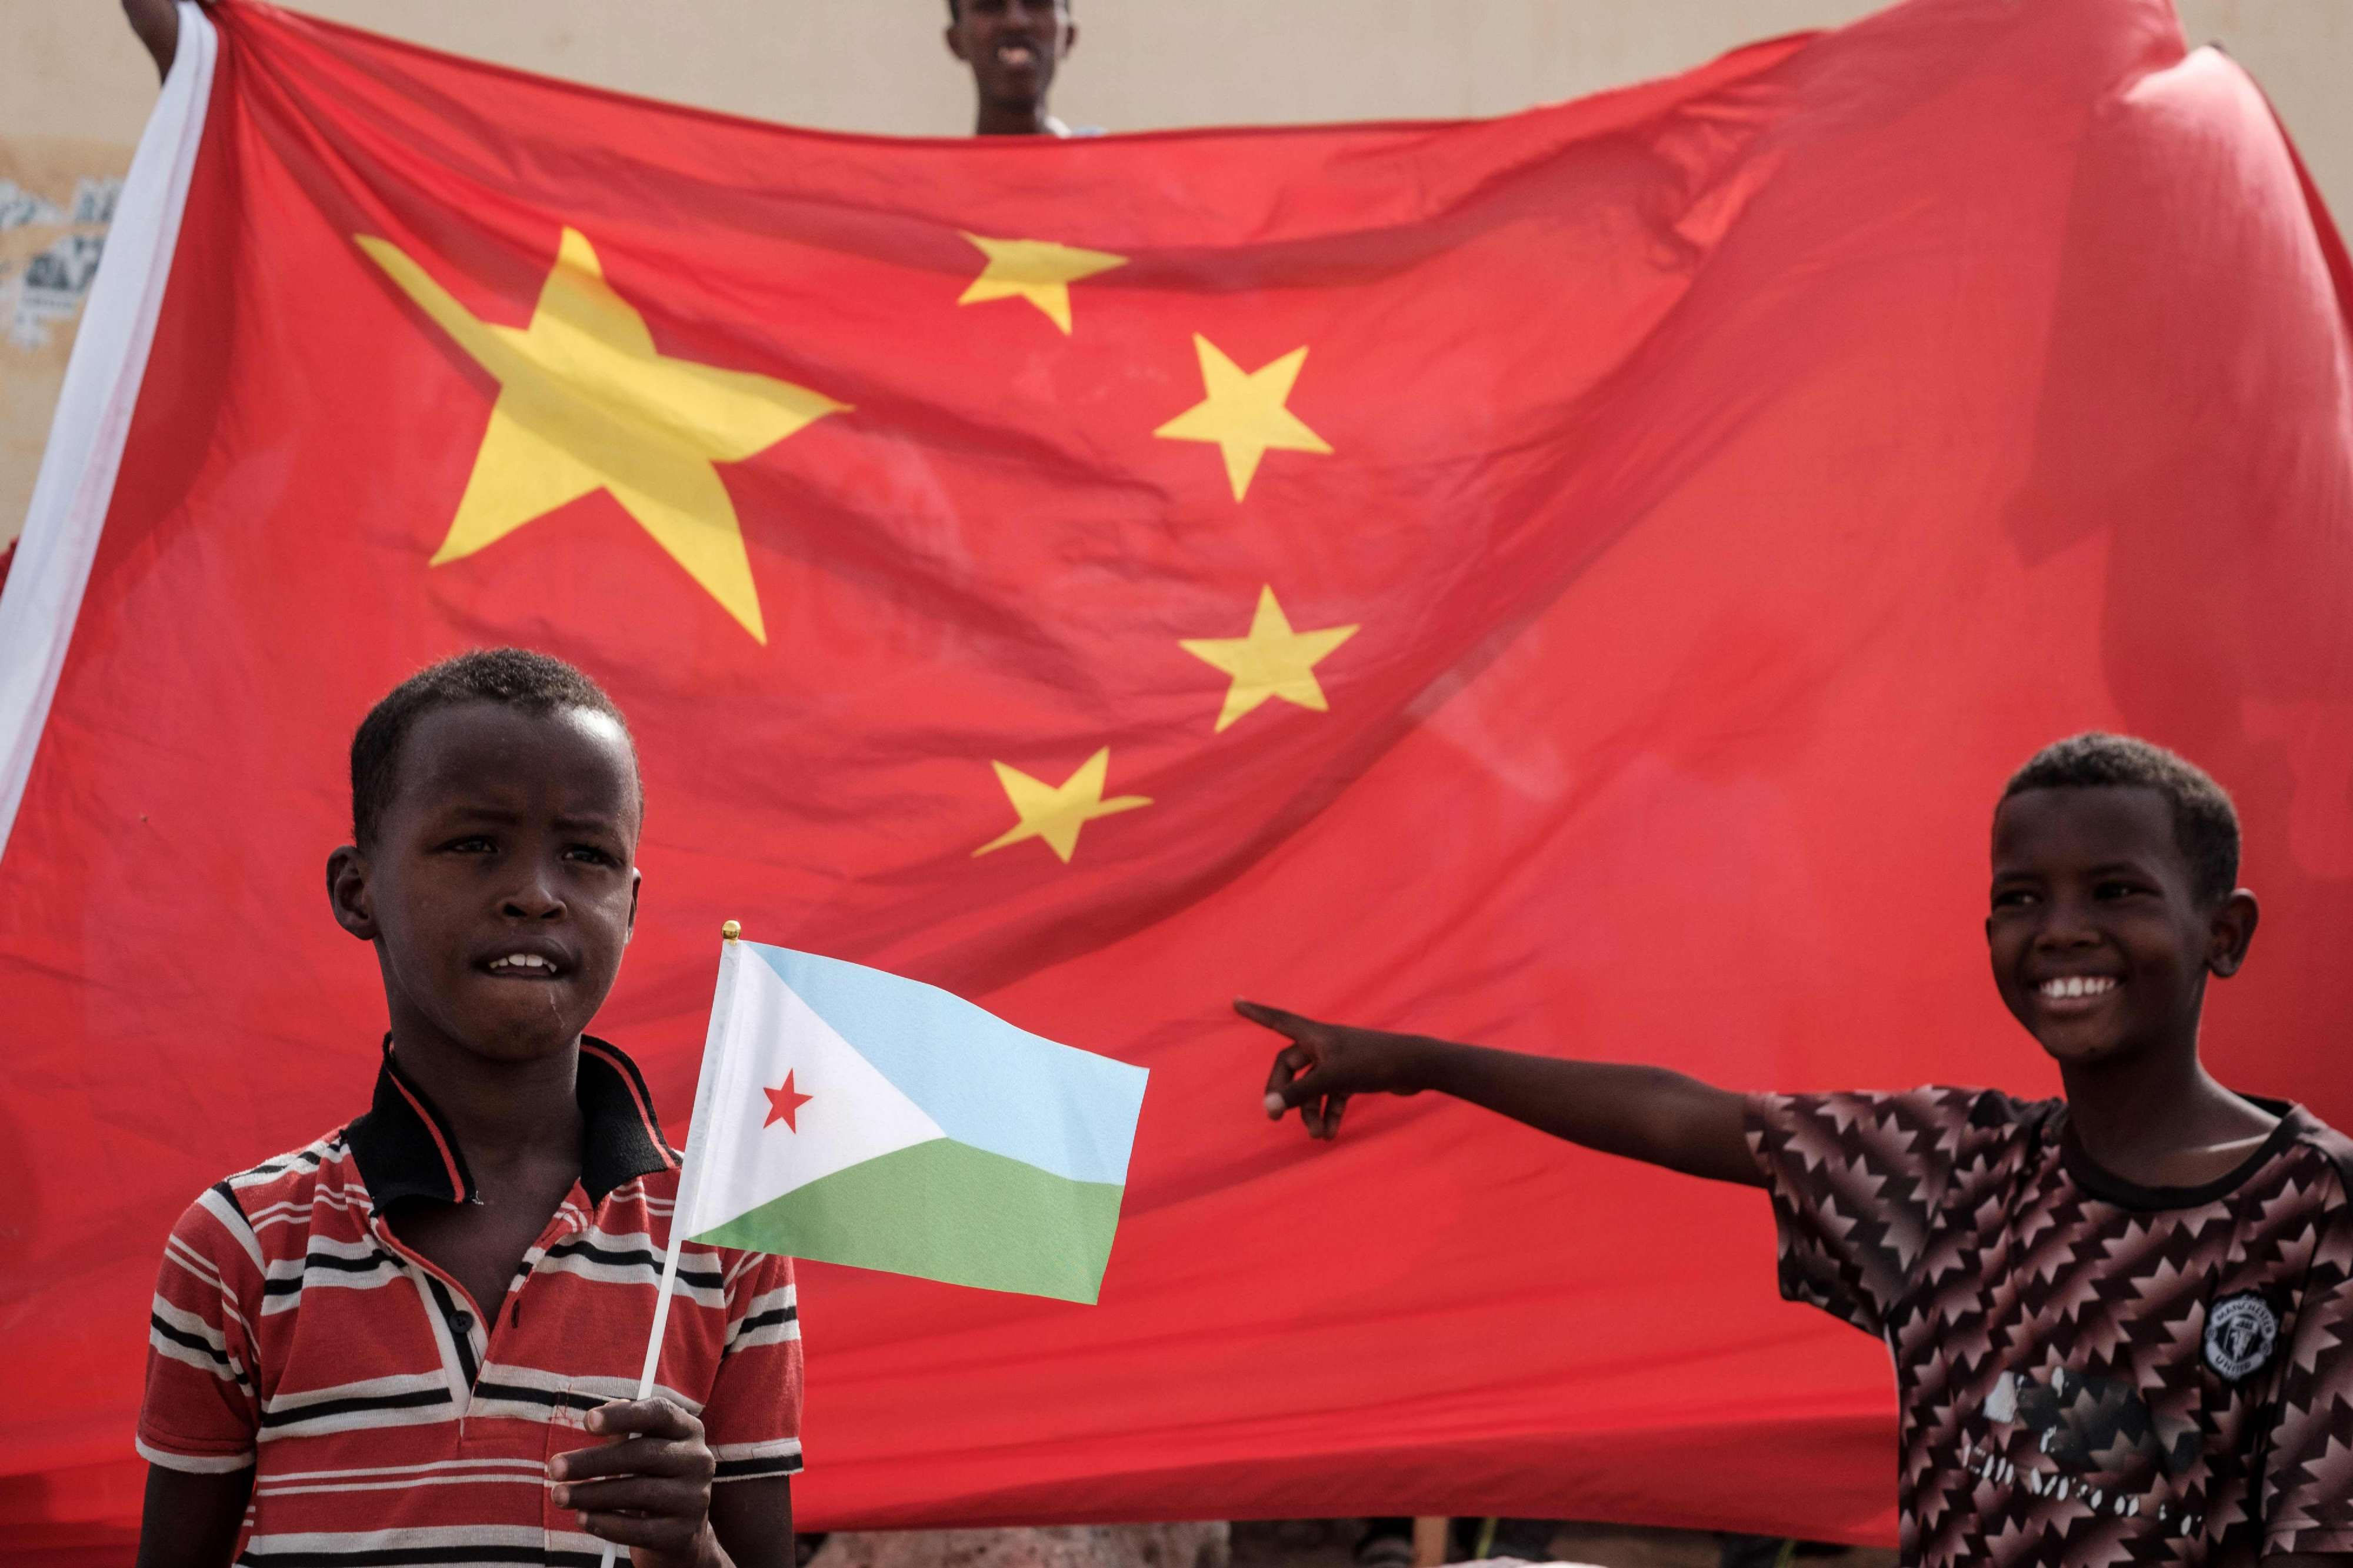 Djibouti is heavily indebted to China